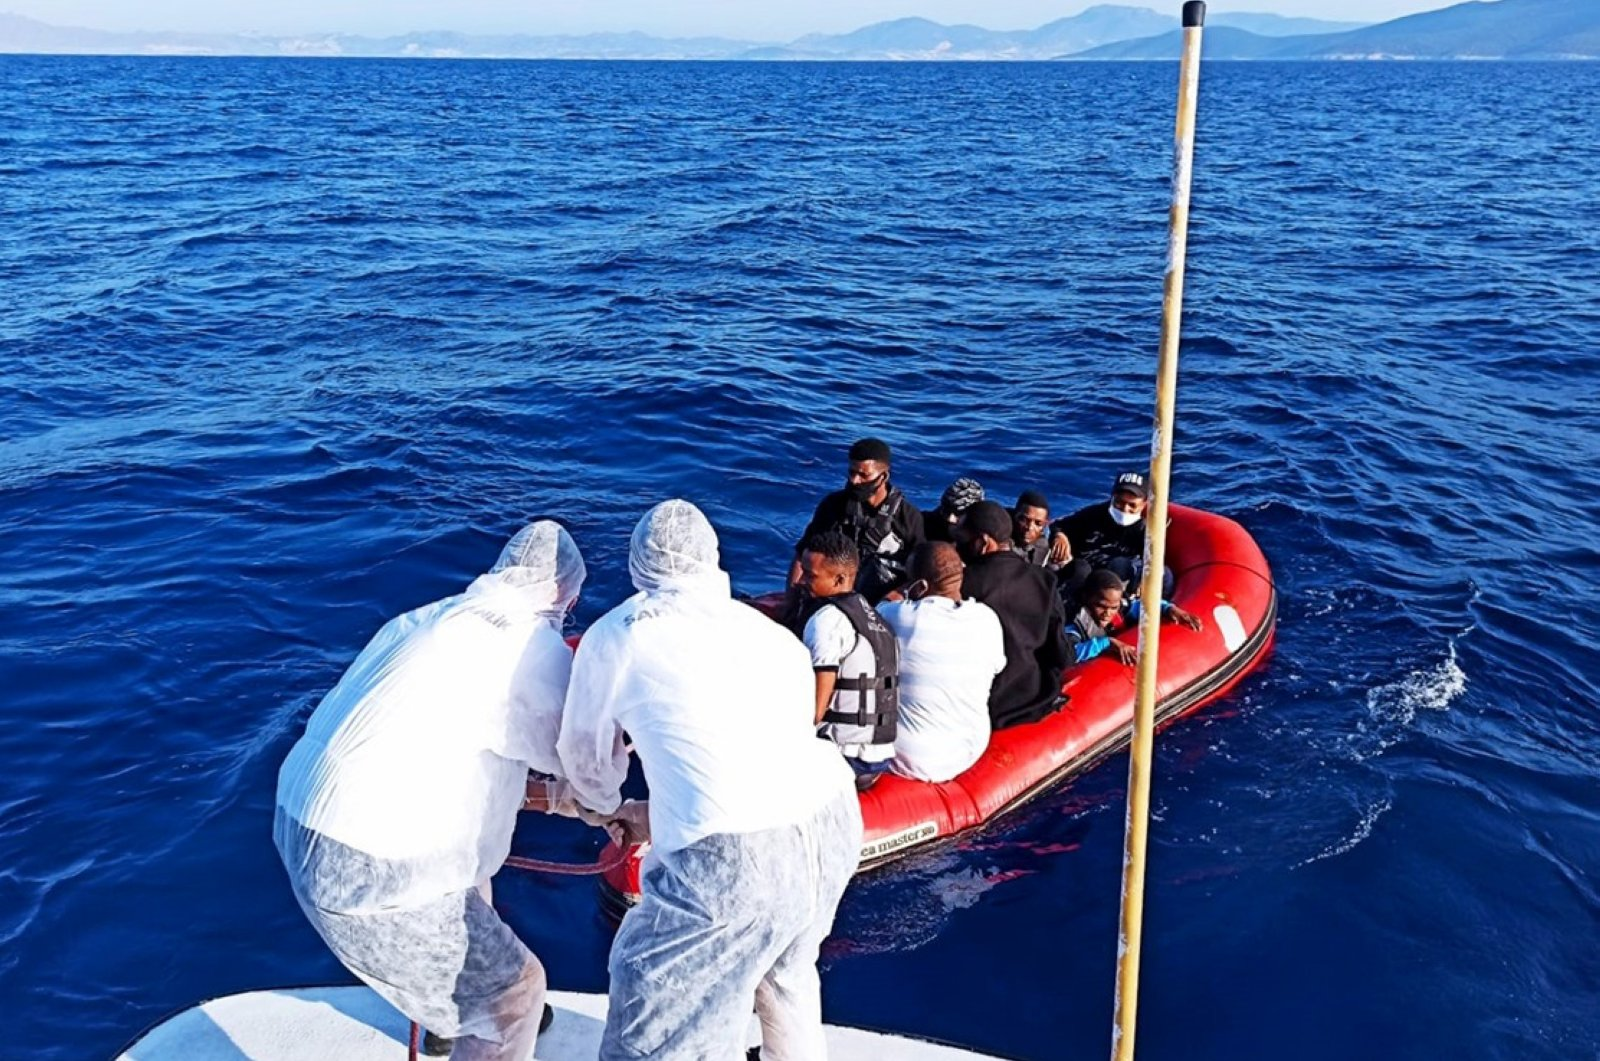 The Turkish coast guard rescued 9 asylum-seekers who were pushed back by the Greek side into Turkish waters off the Aegean coast, Bodrum district of southwestern province of Muğla, Turkey, August 8, 2020. (AA Photo )